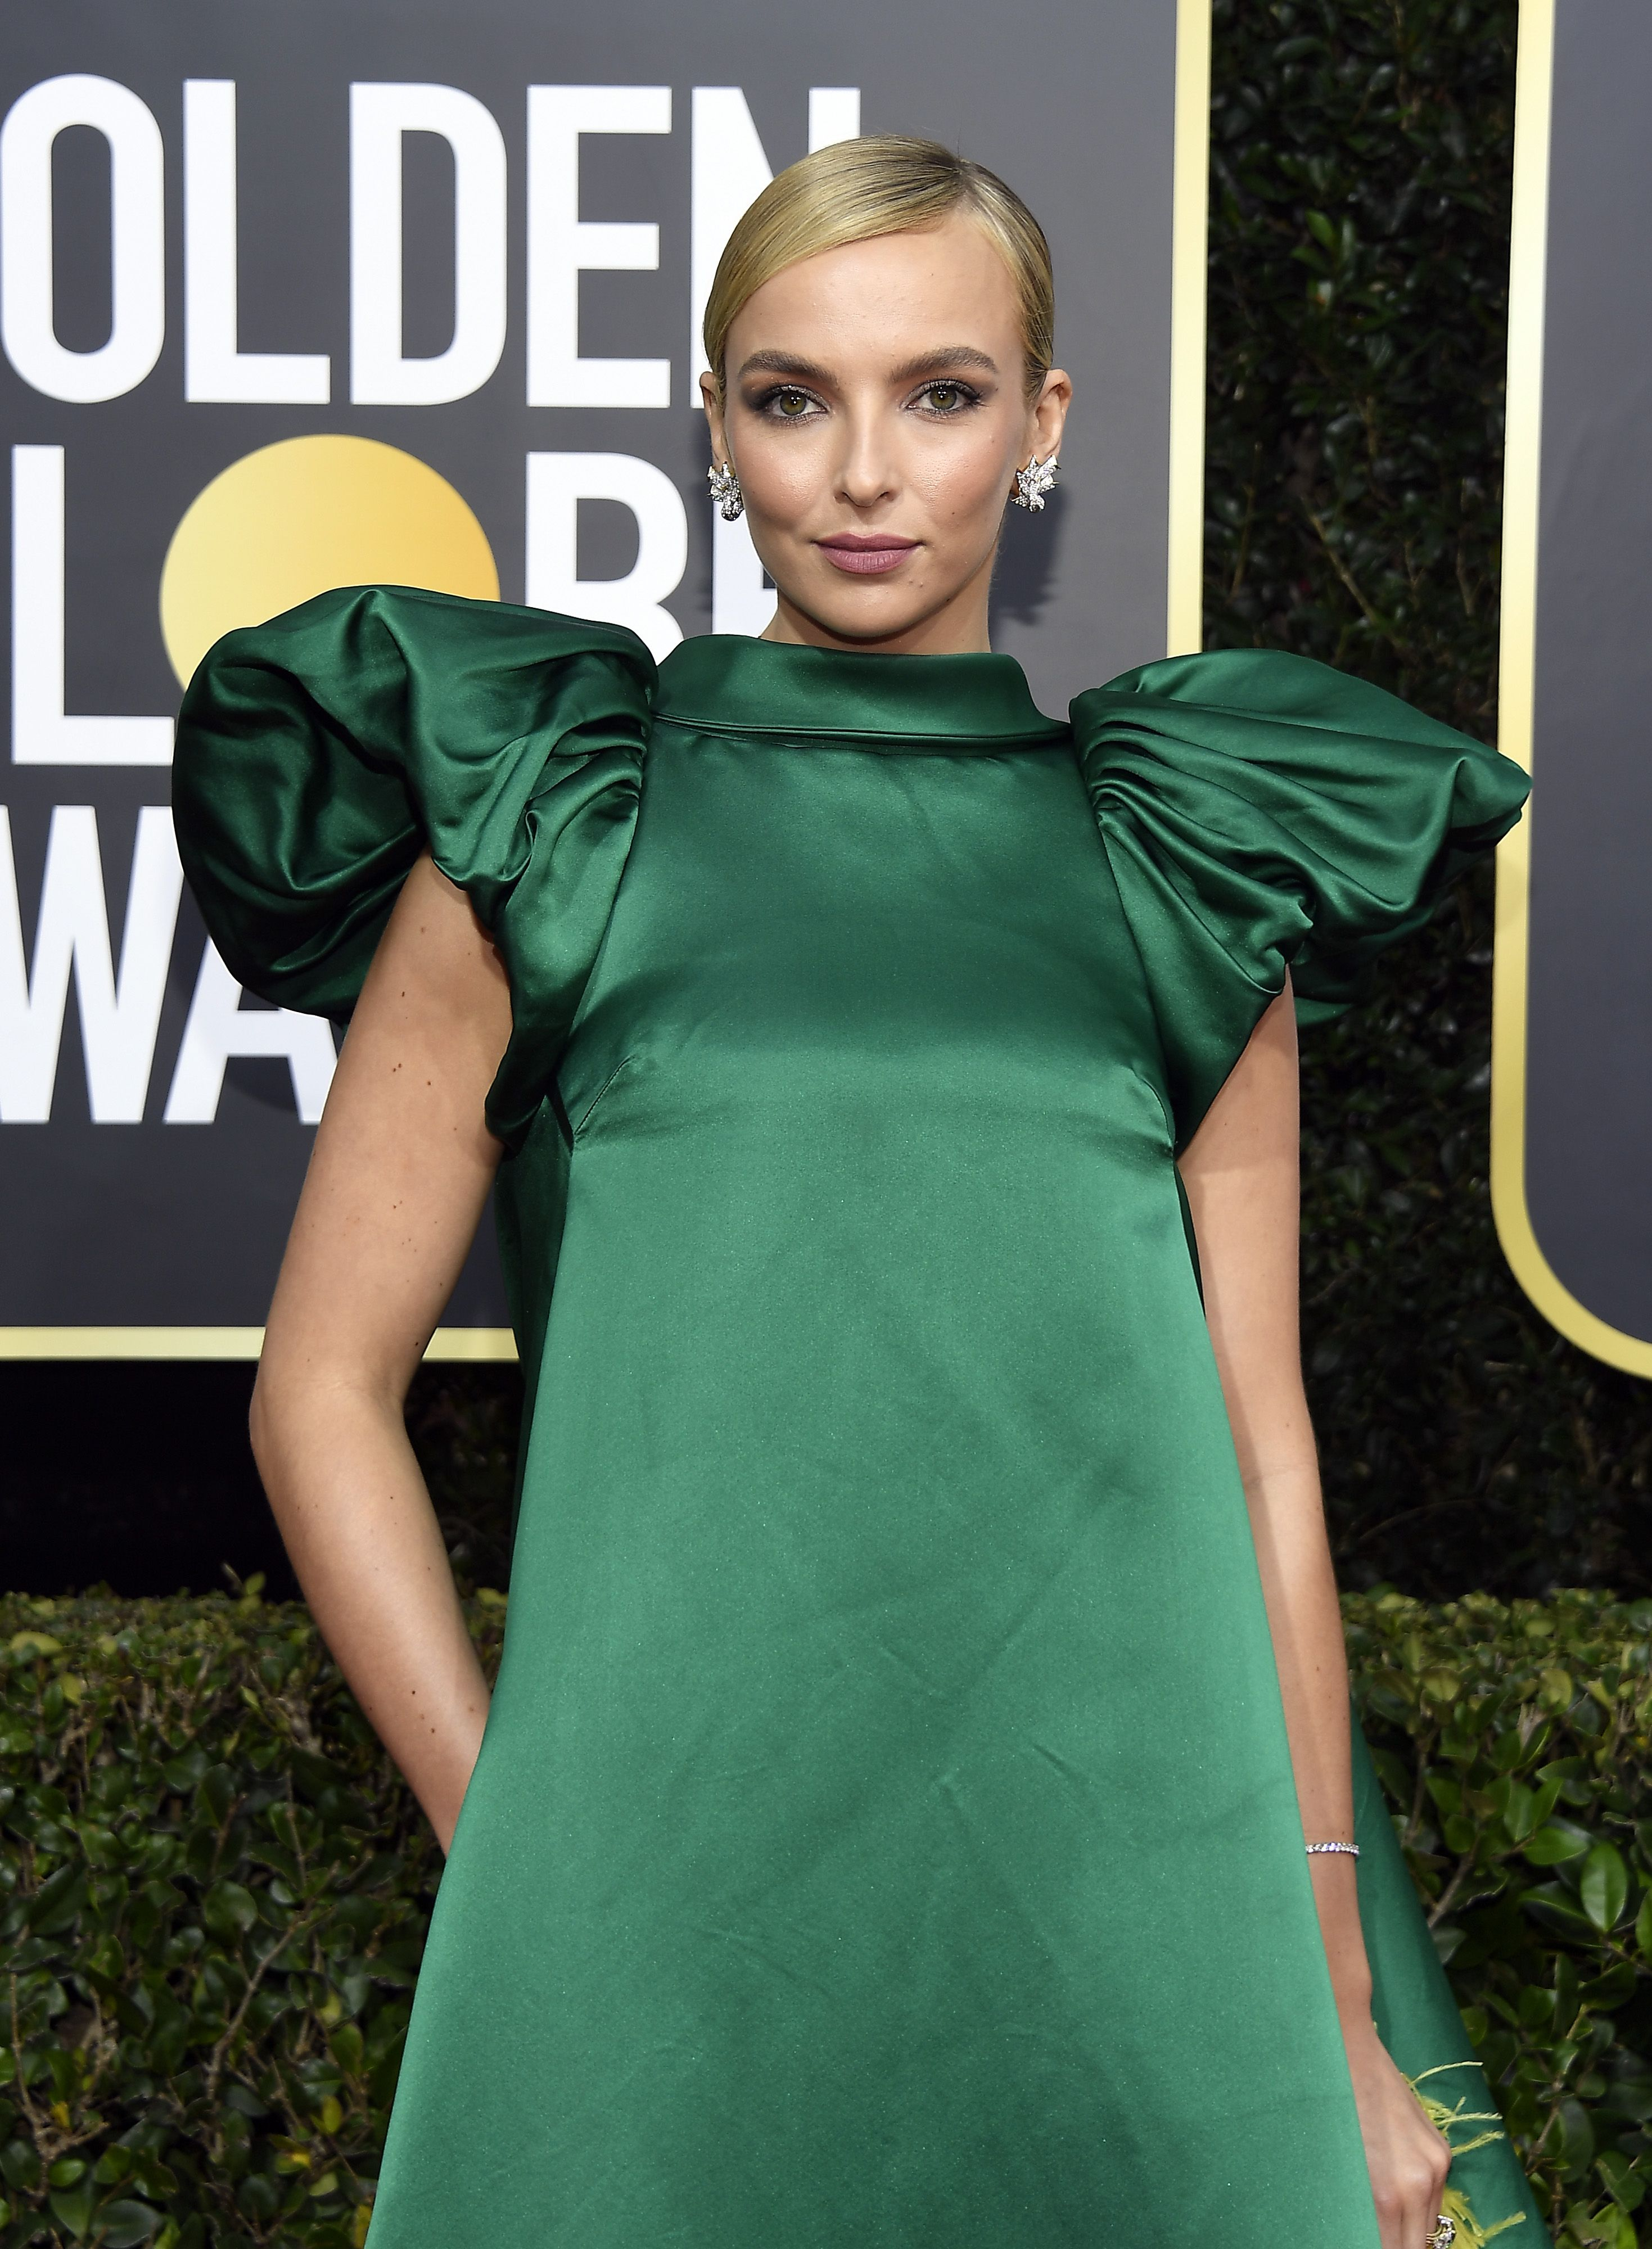 Twitter Compared 'Killing Eve' Star Jodie Comer's Golden Globes Dress to Baby Yoda and I Can't Unsee It